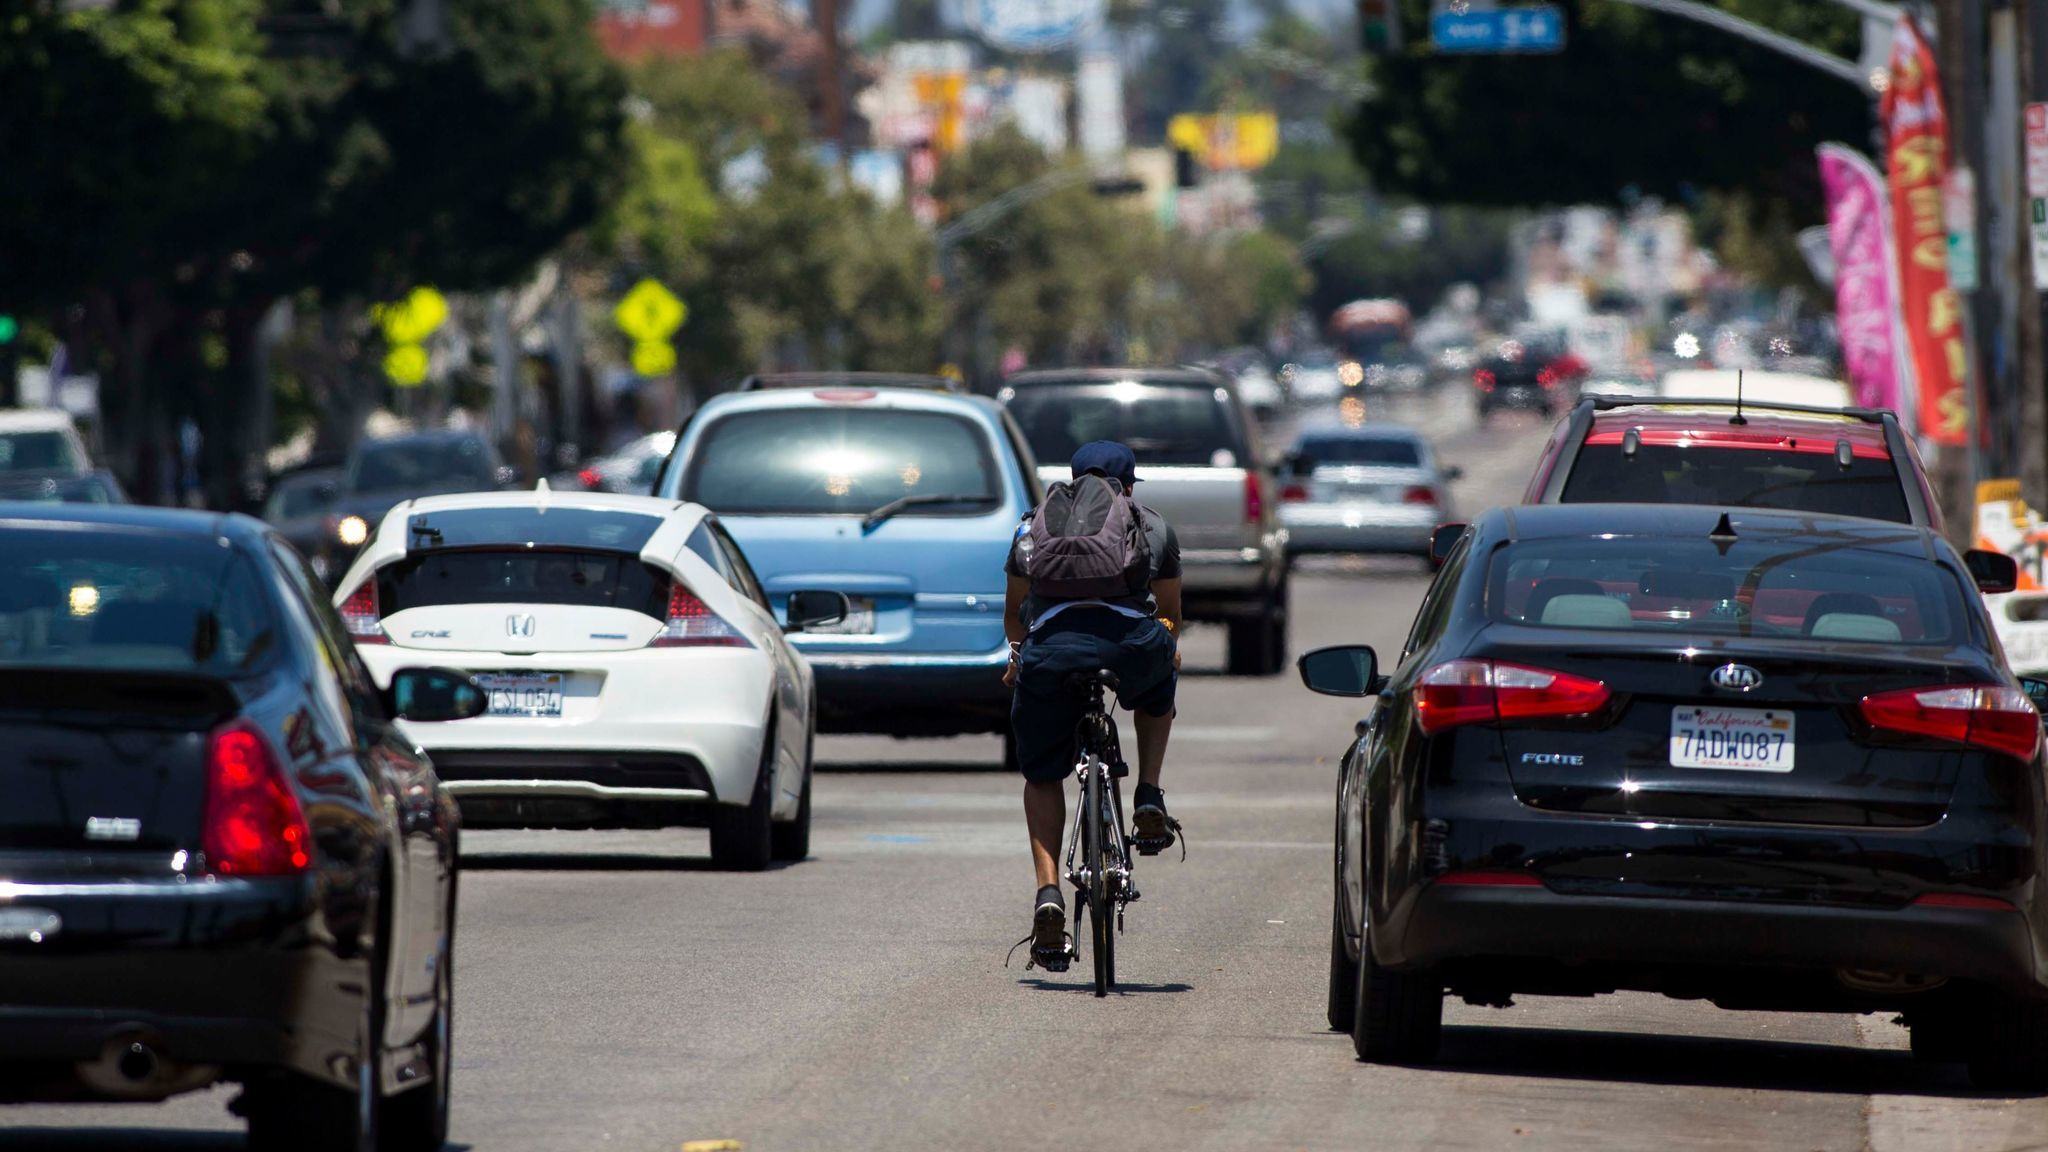 The fight over whether to create bike lanes on Figueroa Street in Highland Park has been a divisive issue in council District 1.